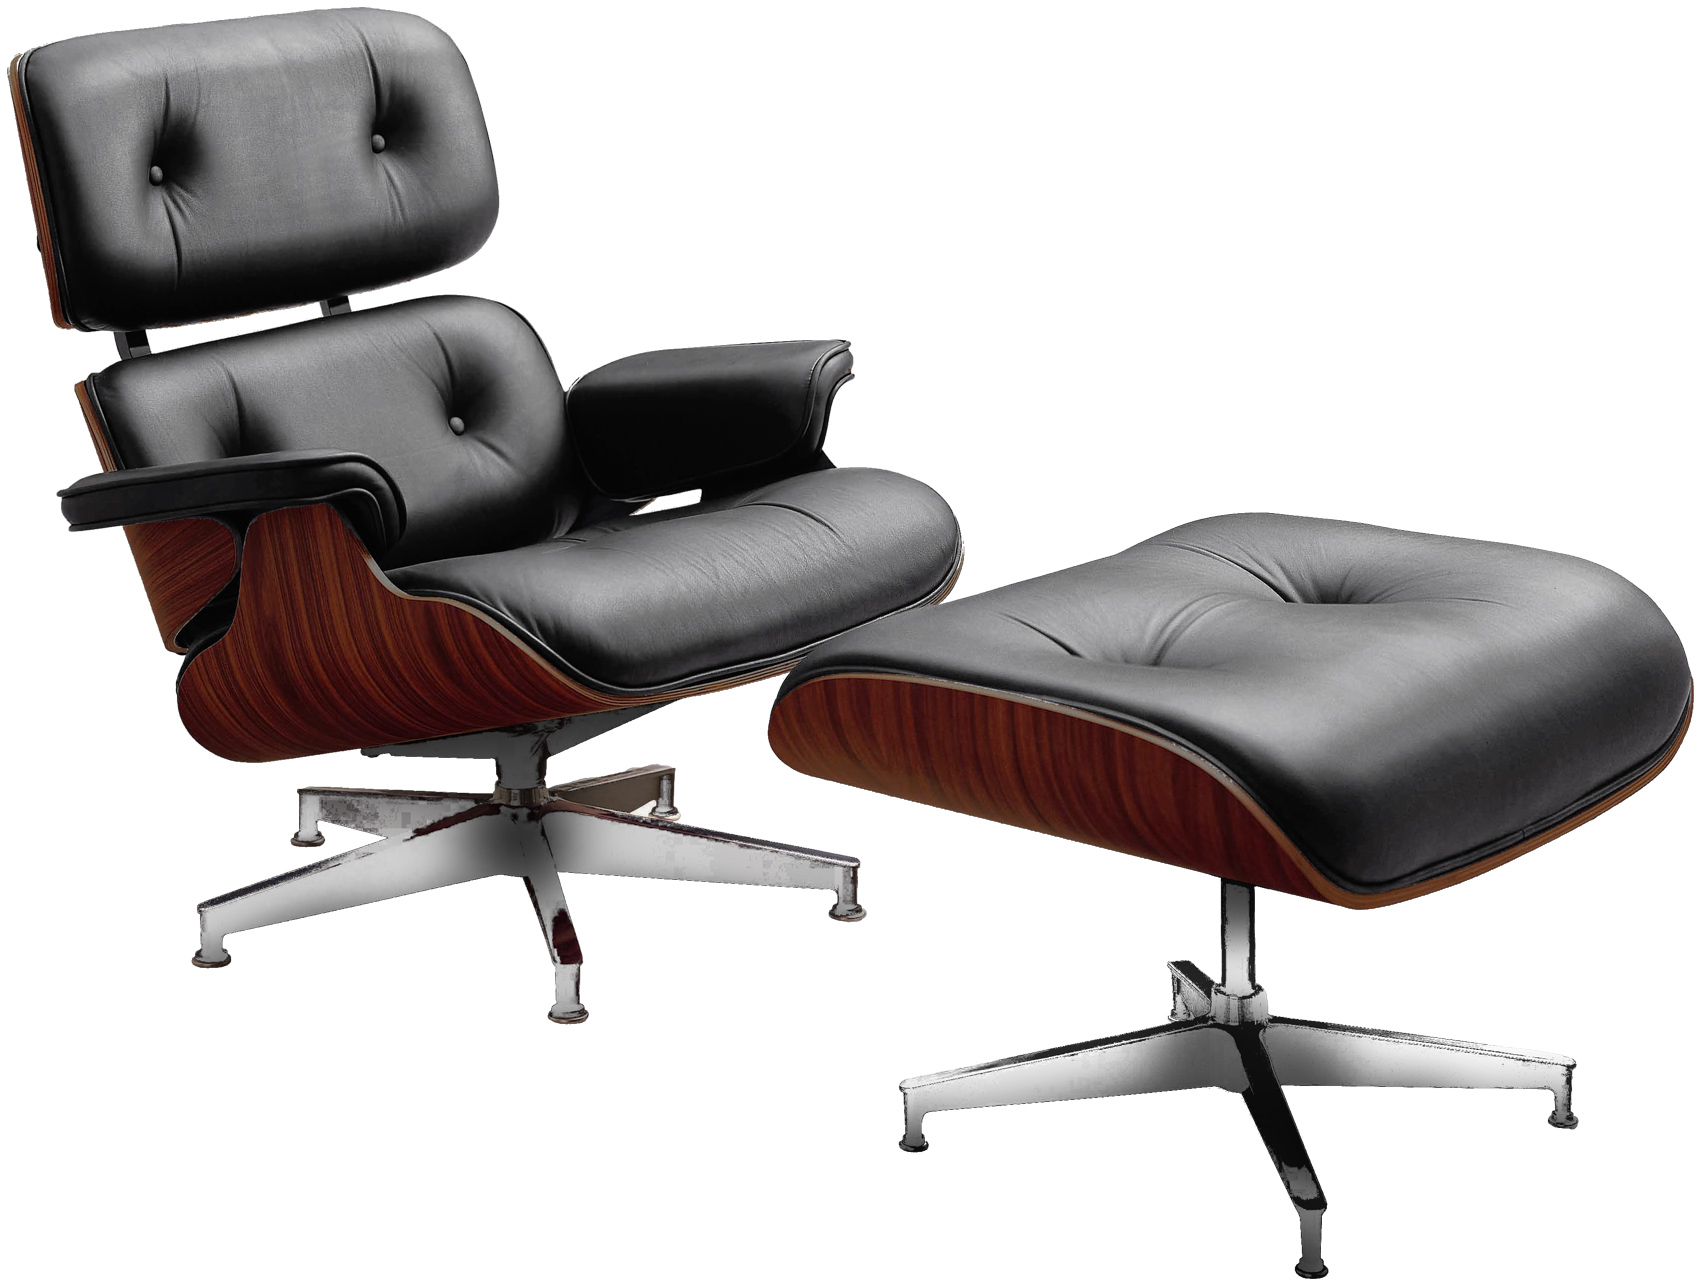 eames style office chairs. Charles Eames Style Leather Lounge Chair | Specialist Furniture Contracts Office Chairs C